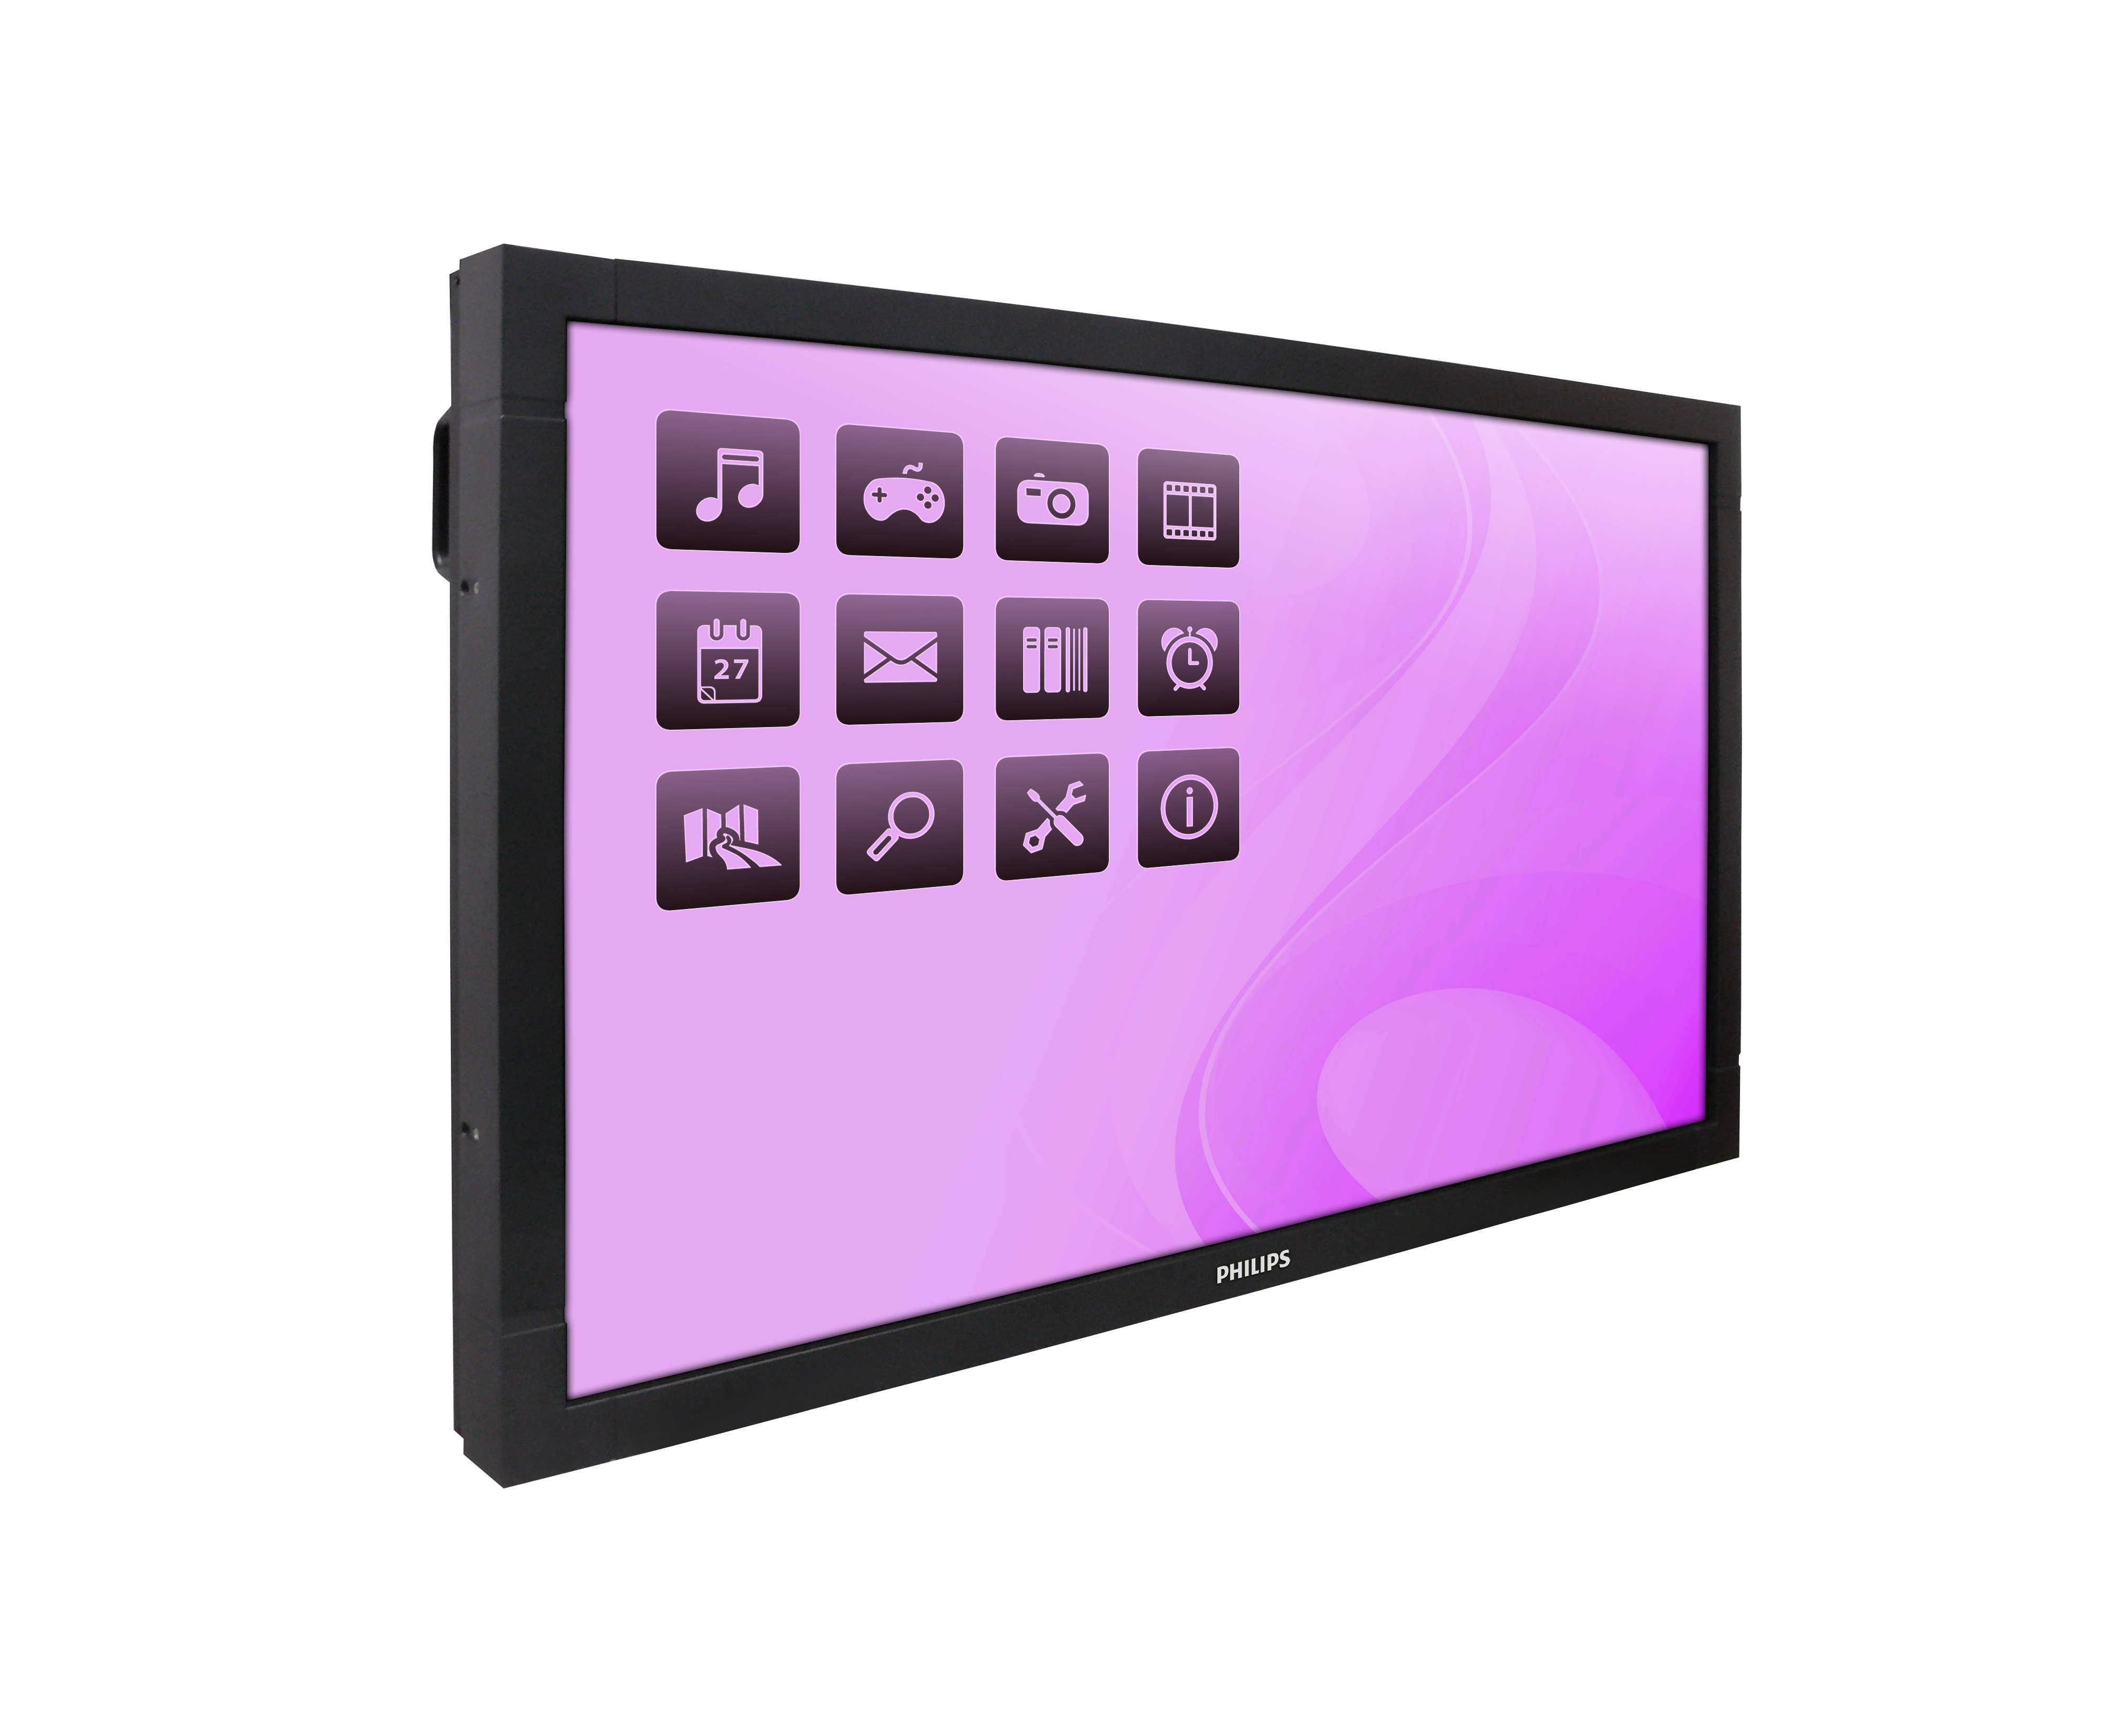 "46"" Multi-Touch HD LCD Display with OPS (BDL4645AT/27)"